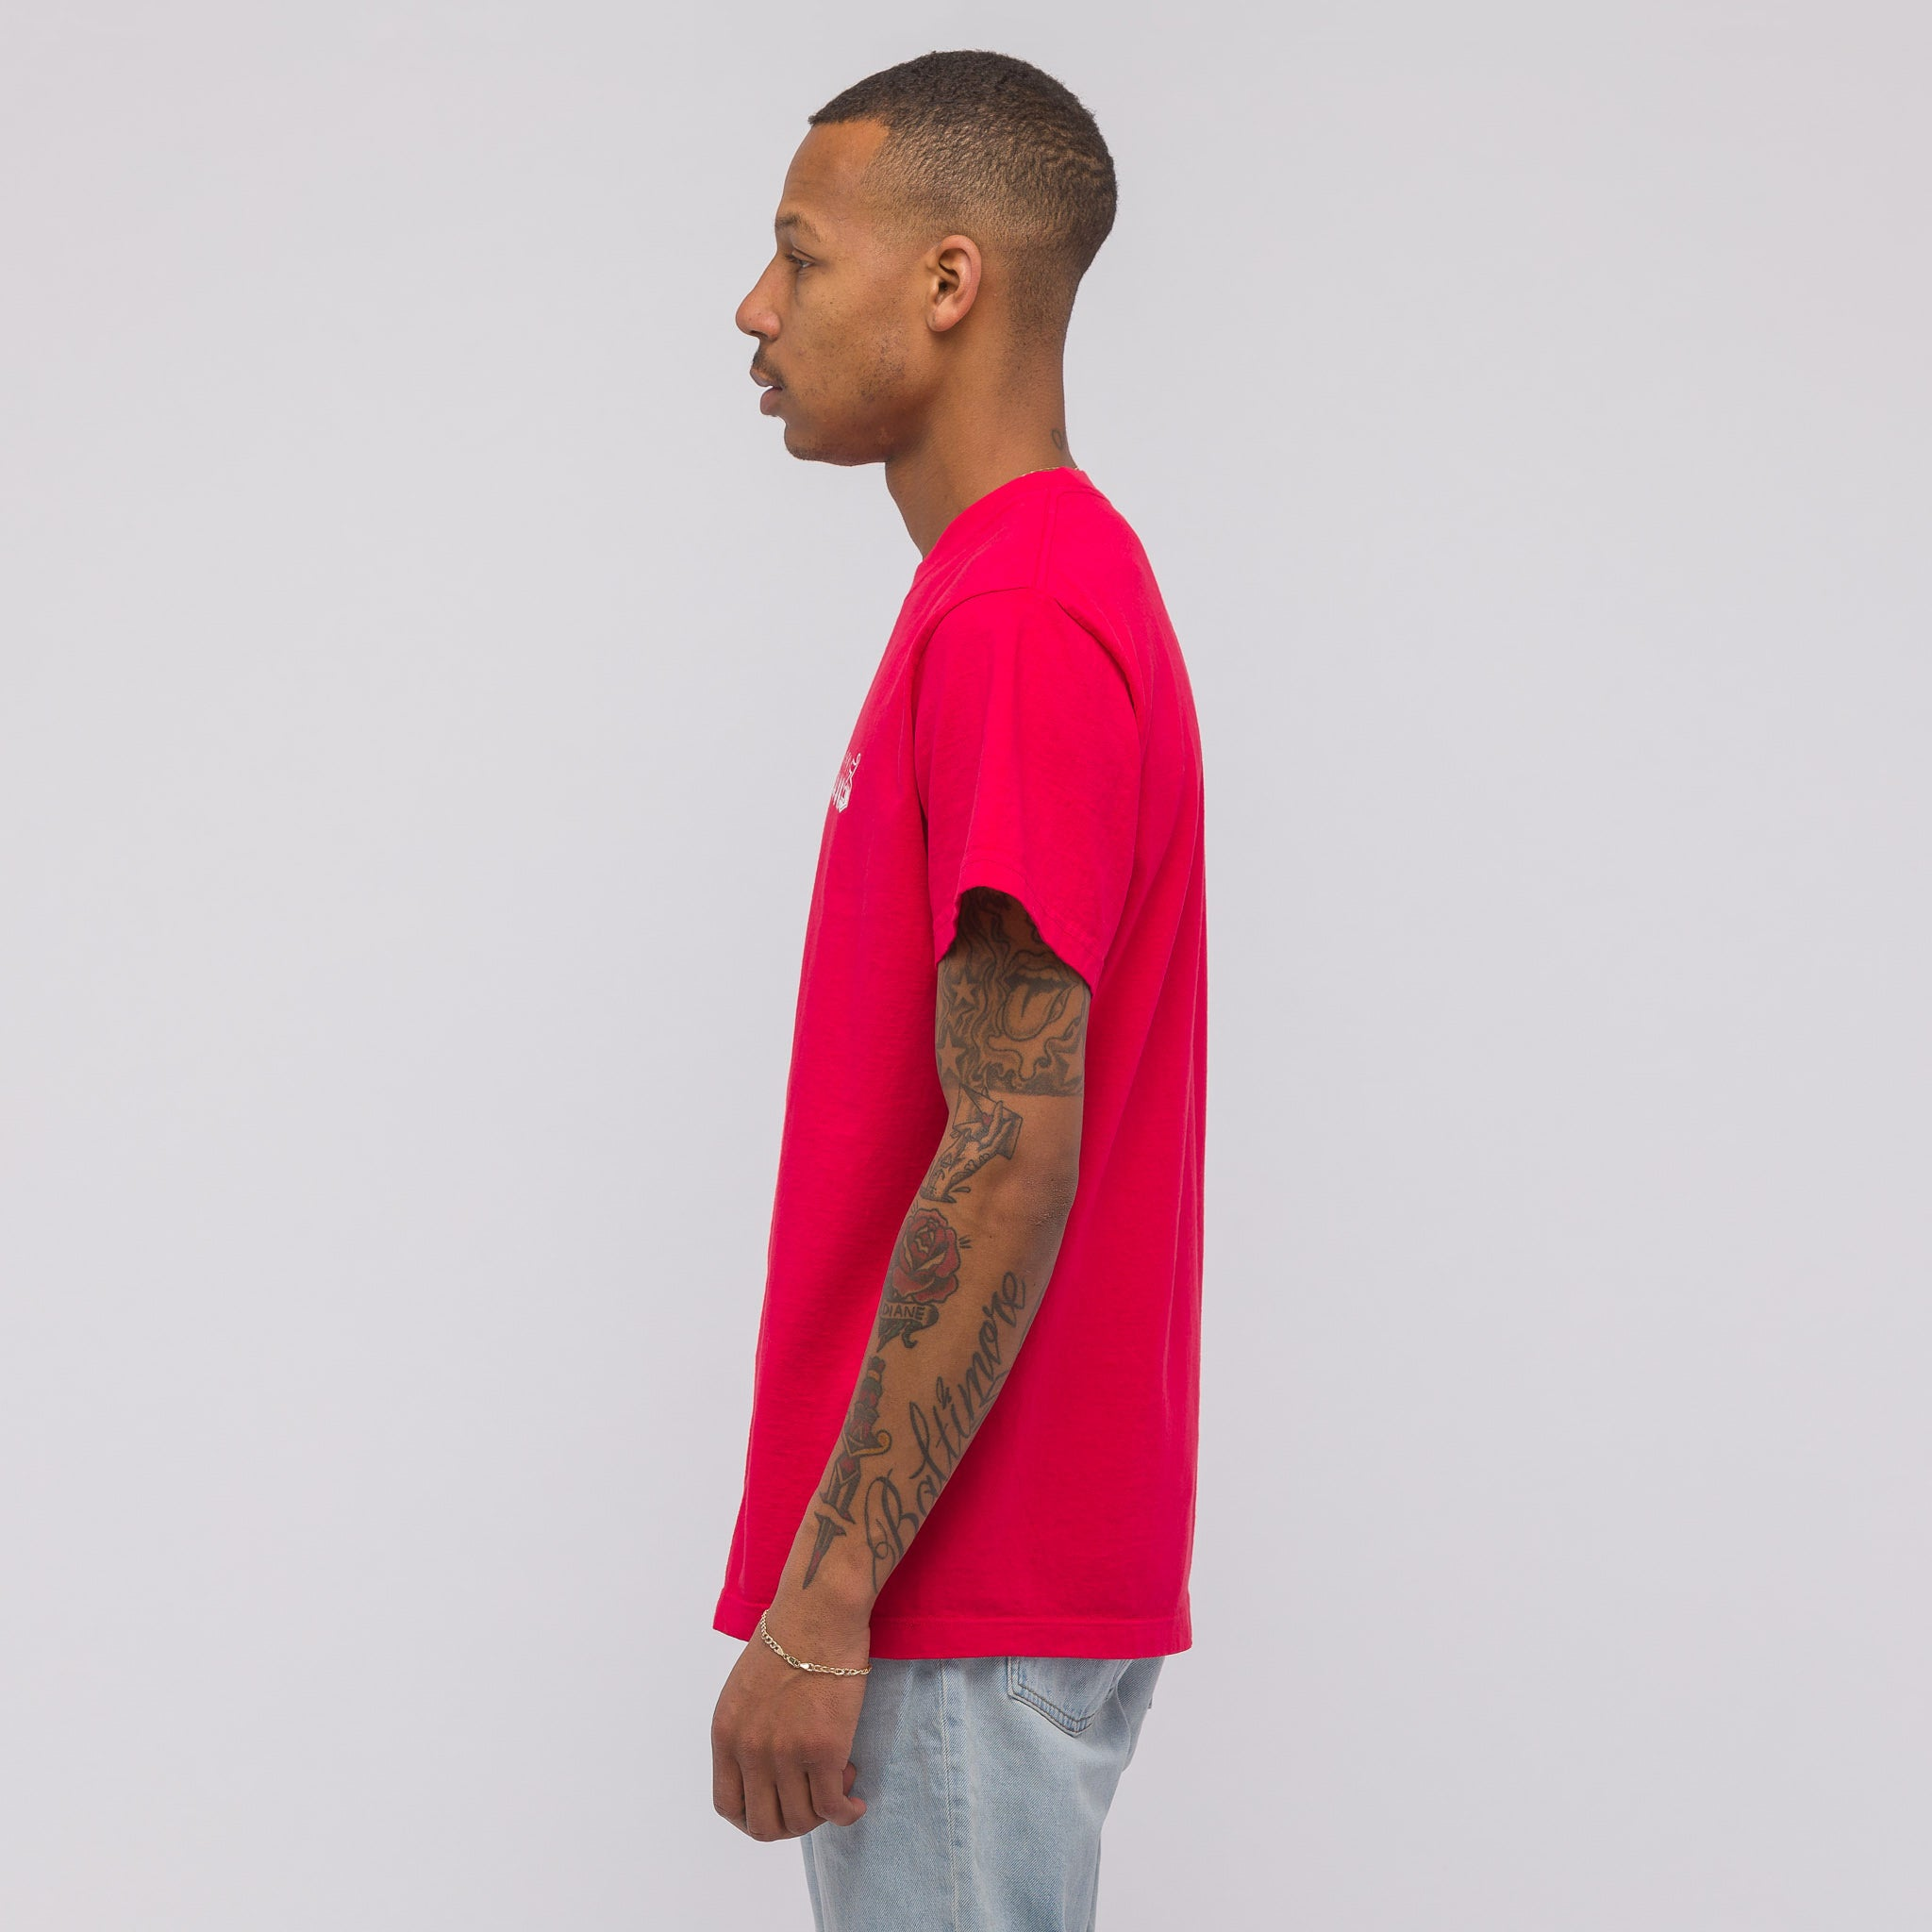 Old English T-Shirt in Red